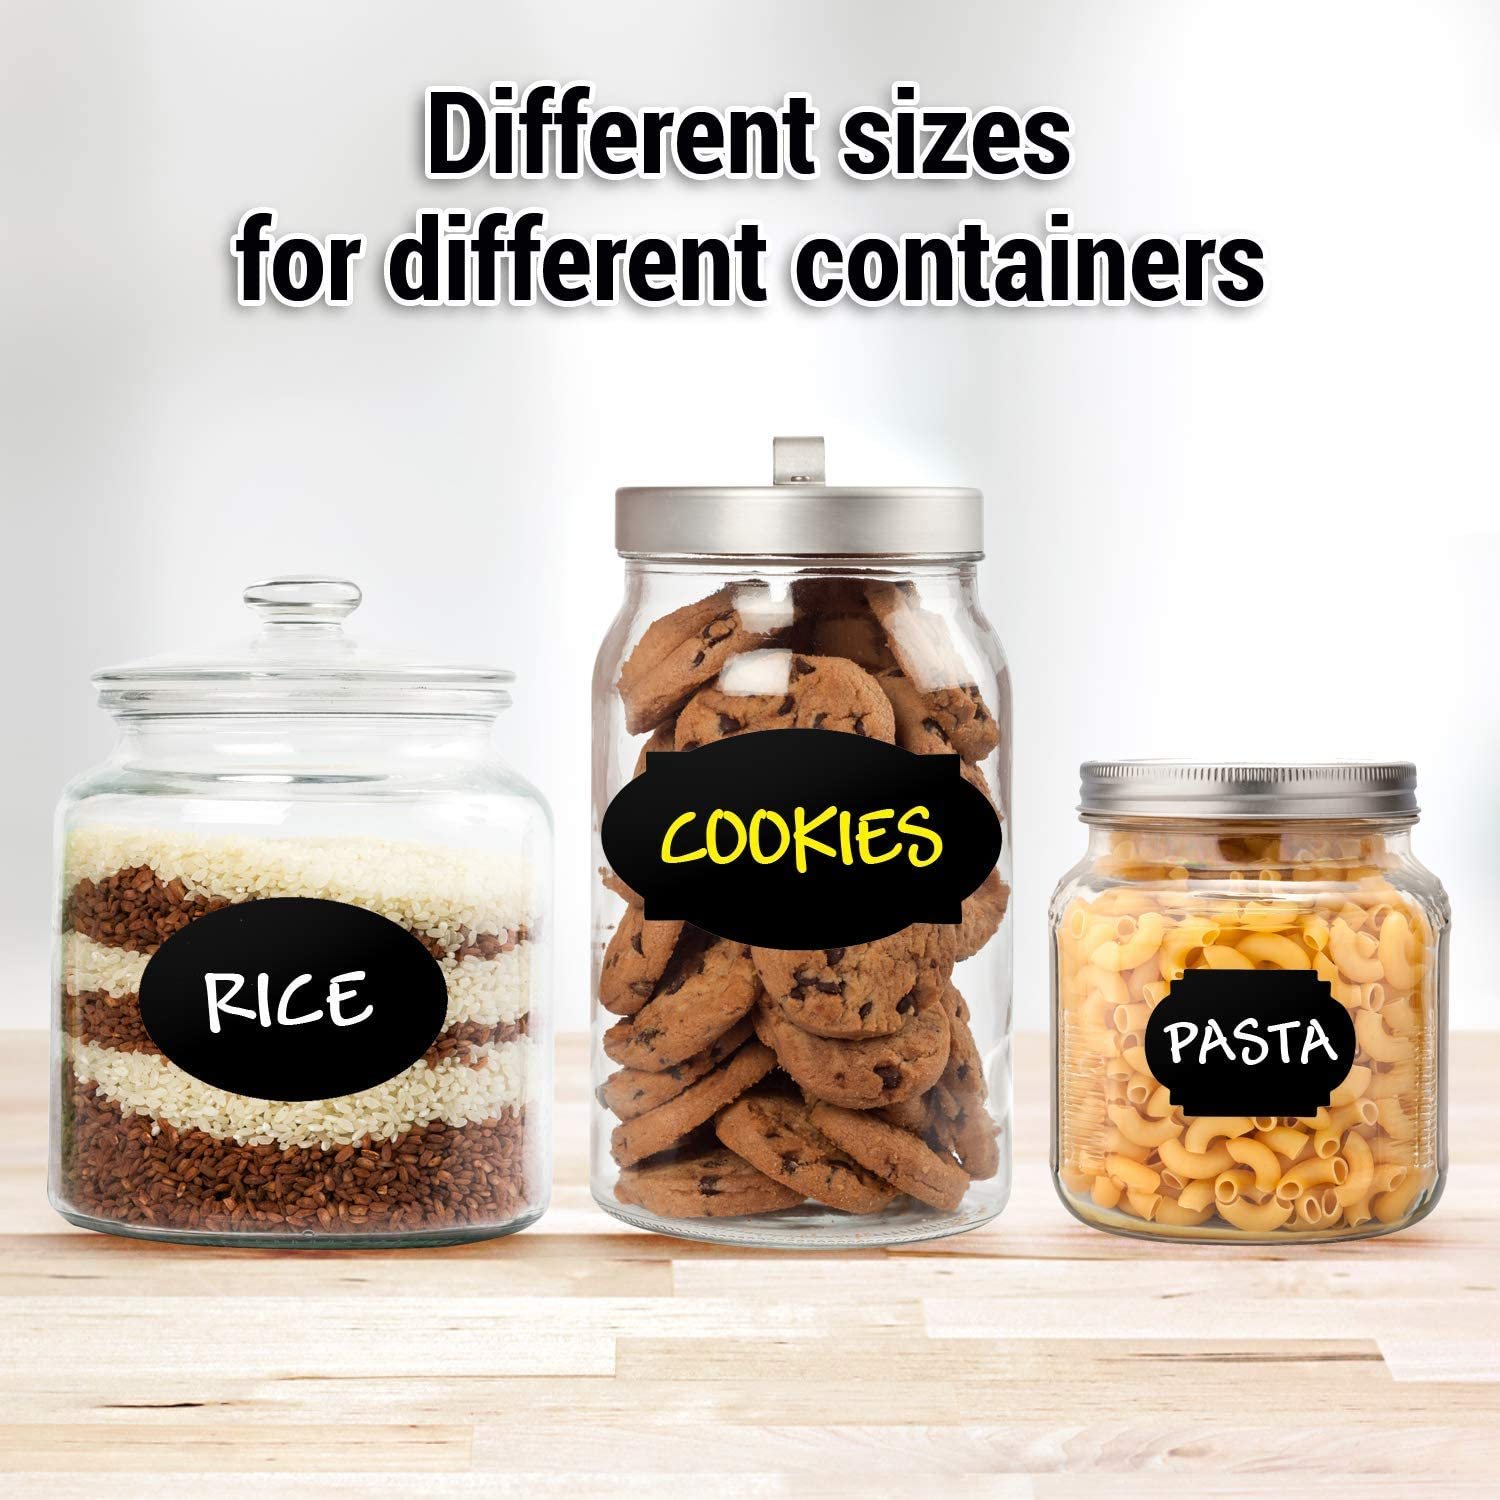 Chalkboard Labels 173 Pcs Pack, Reusable and Waterproof Stickers for Containers, Jars; Mason, Spice, and Glass, Blackboard Organizer for Kitchen and Pantry in Small, Medium, and Large with 2 Markers : Office Products